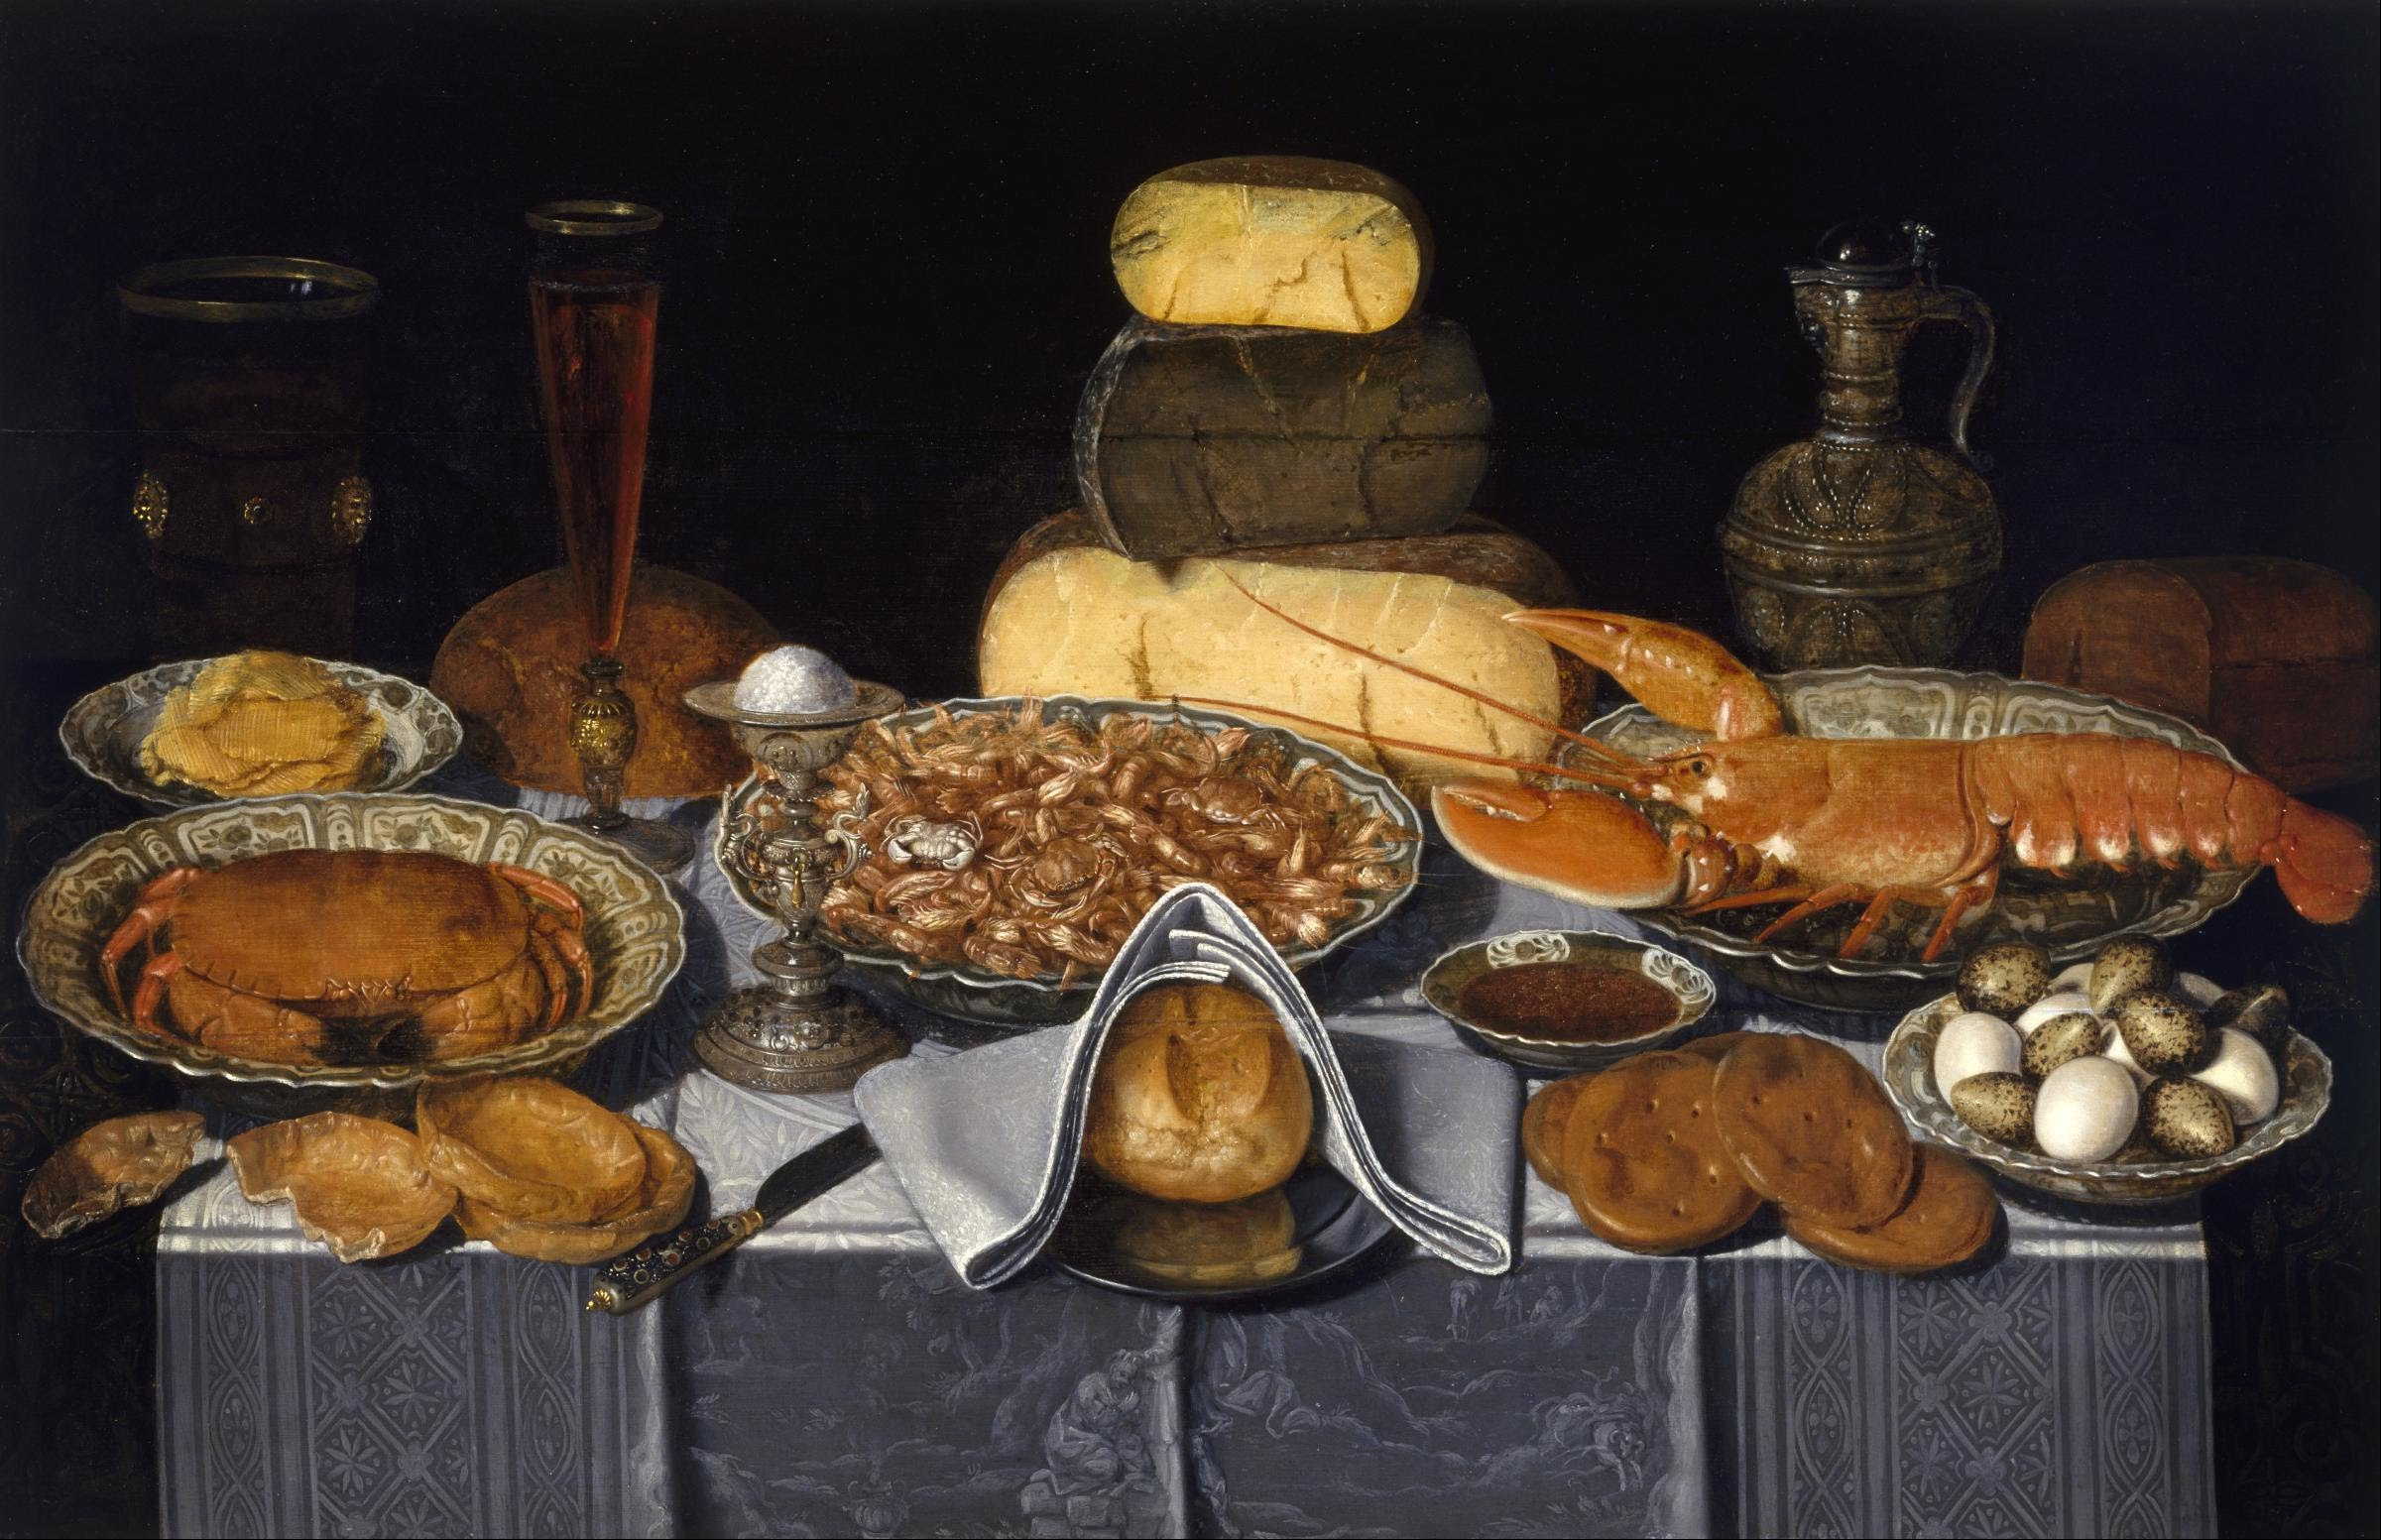 Clara Peeters, Still Life with Crab, Shrimps and Lobster, 1635-1640 Oil on wood, w108.9 x h70.8 cm   (image - The Museum of Fine Arts, Houston, gift of the Enthoven Foundation)